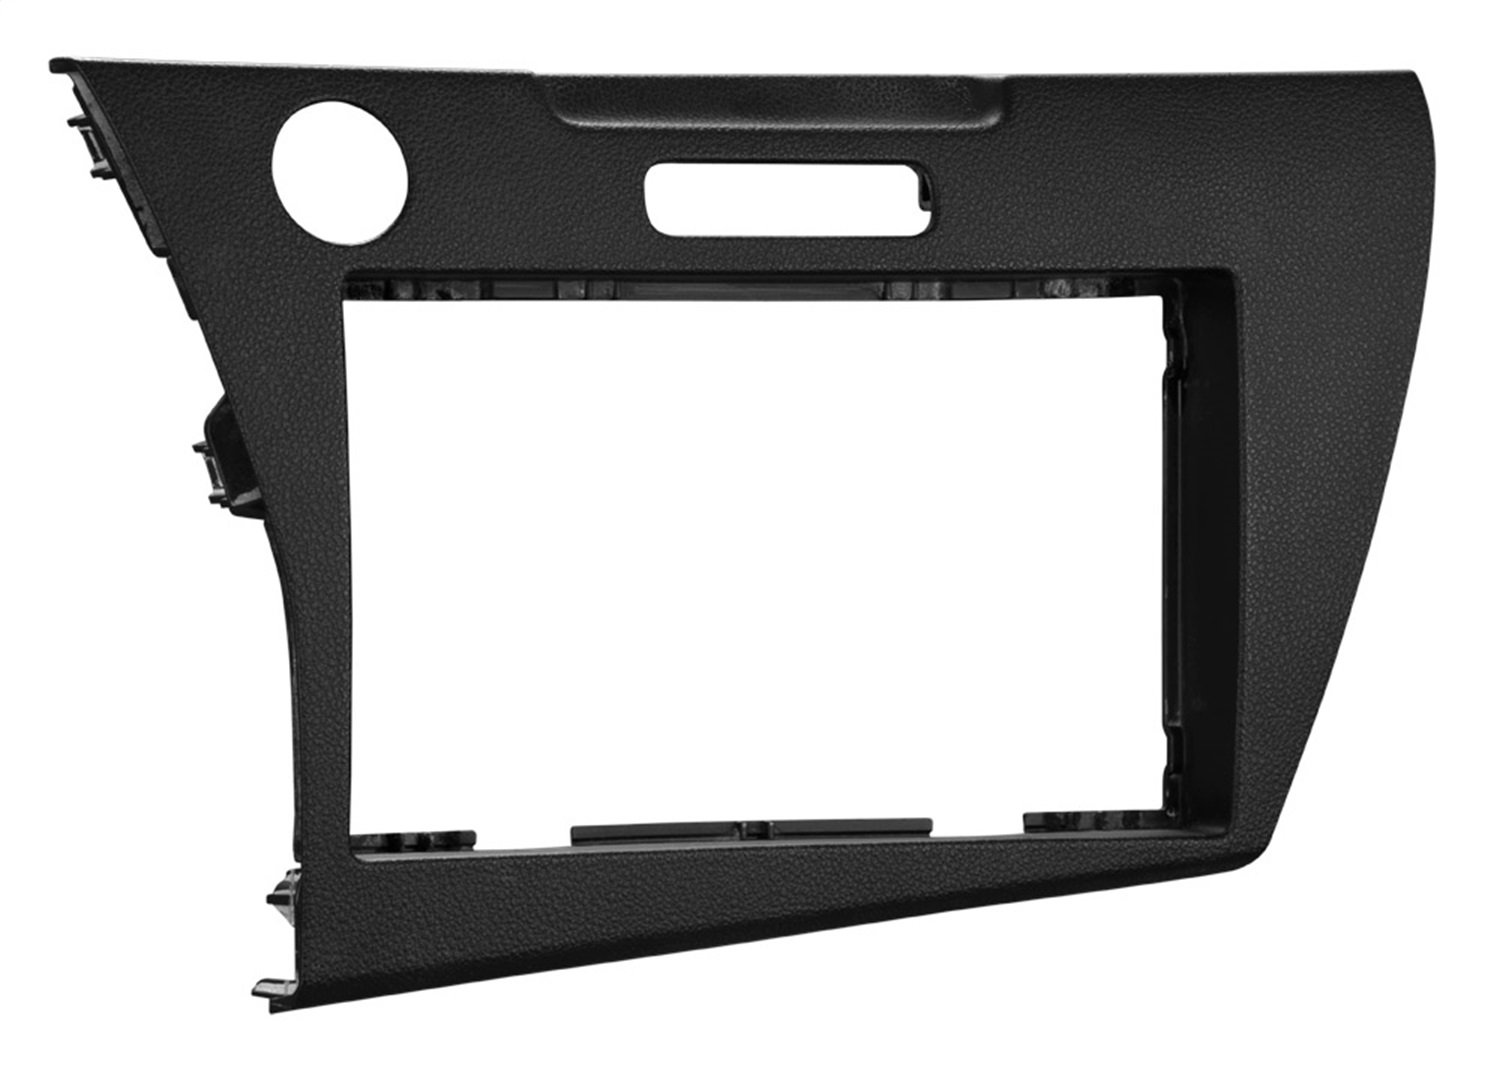 Black Metra 95-7879 Double DIN Dash Installation Kit for 2011 Honda Cr-Z Vehicles